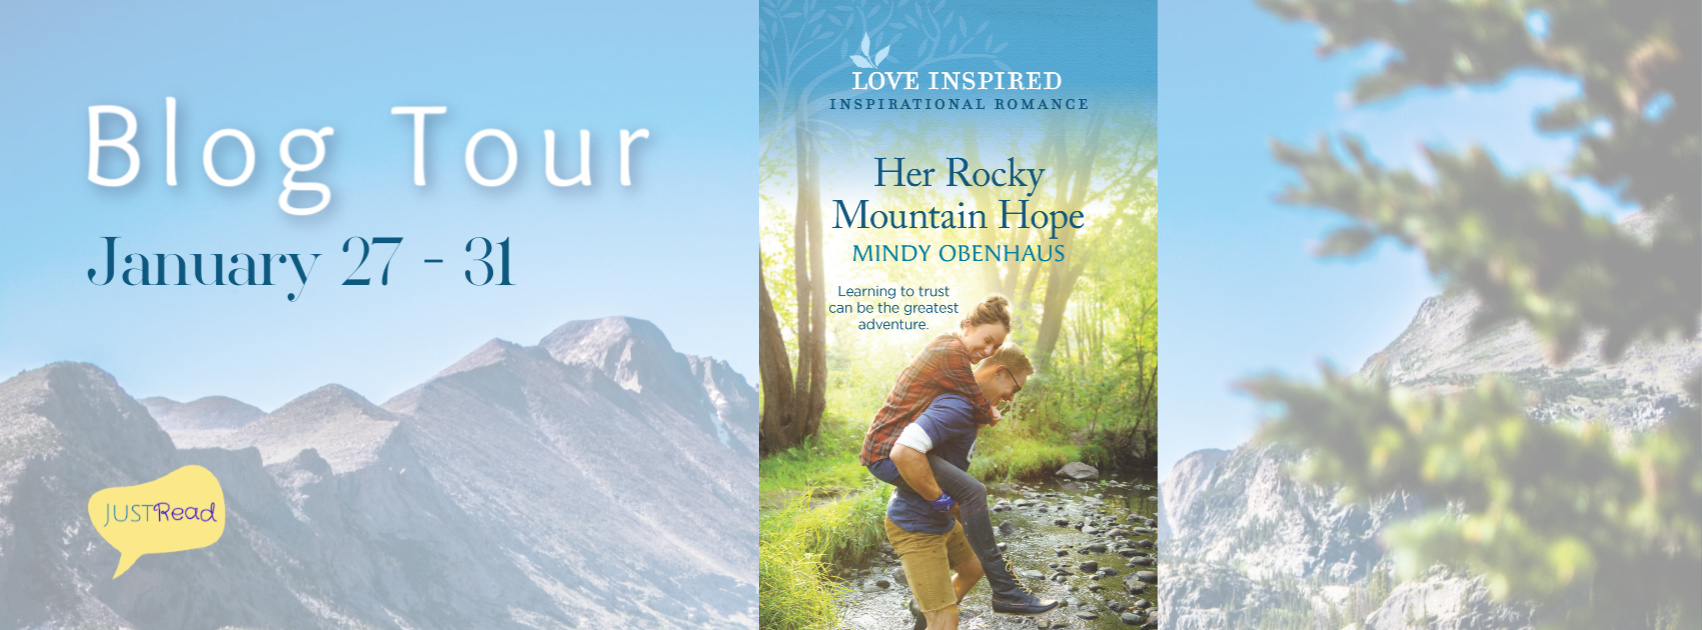 Welcome to Her Rocky Mountain Hope Blog Tour & Giveaway!